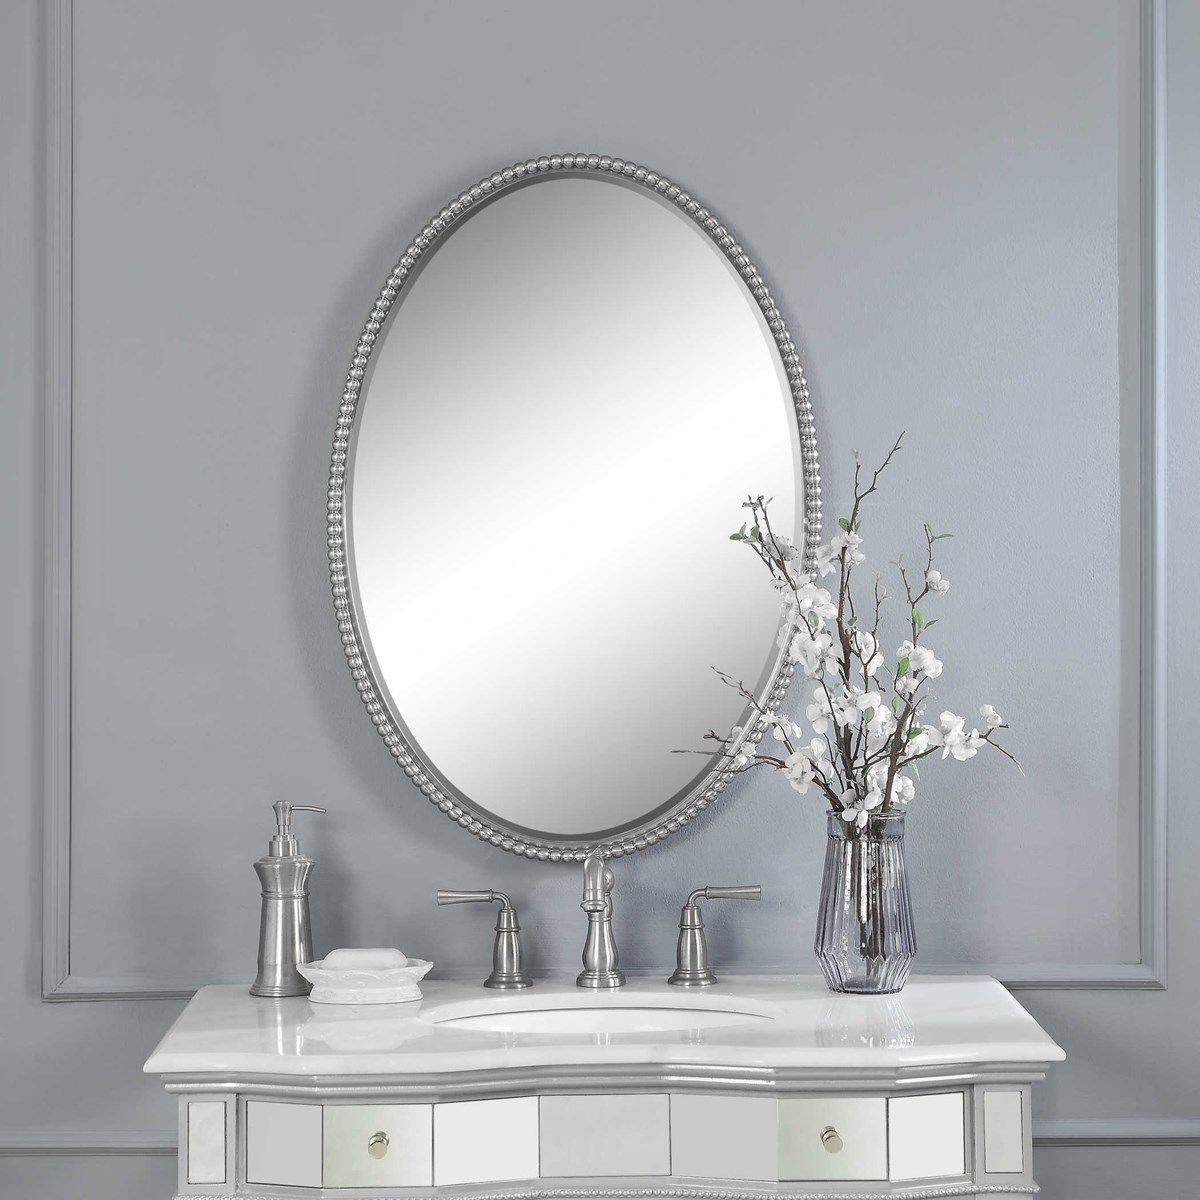 Uttermost Sherise Brushed Nickel Oval Mirror Round Mirror Bathroom Oval Mirror Bathroom Oval Mirror